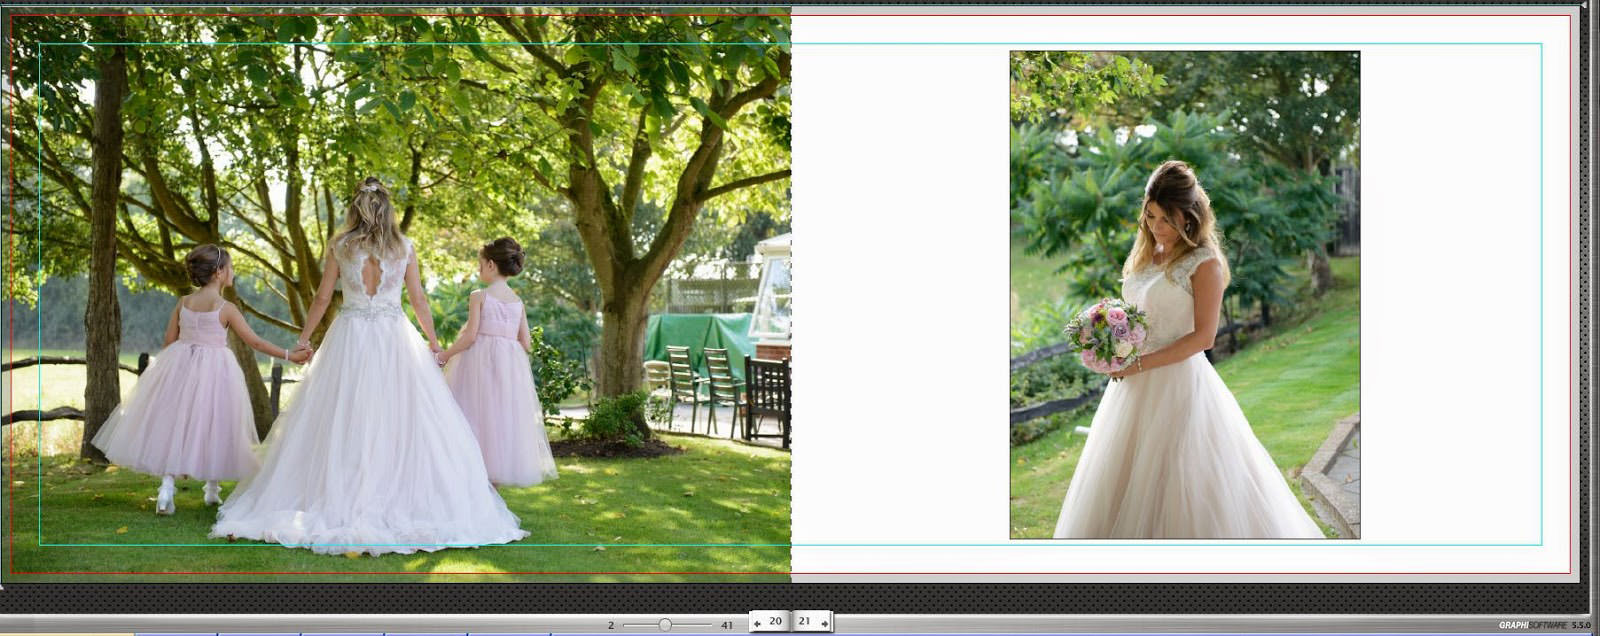 ali-gaudion-chichester-wedding-photographer-graphistudio-wedding-album-design-010